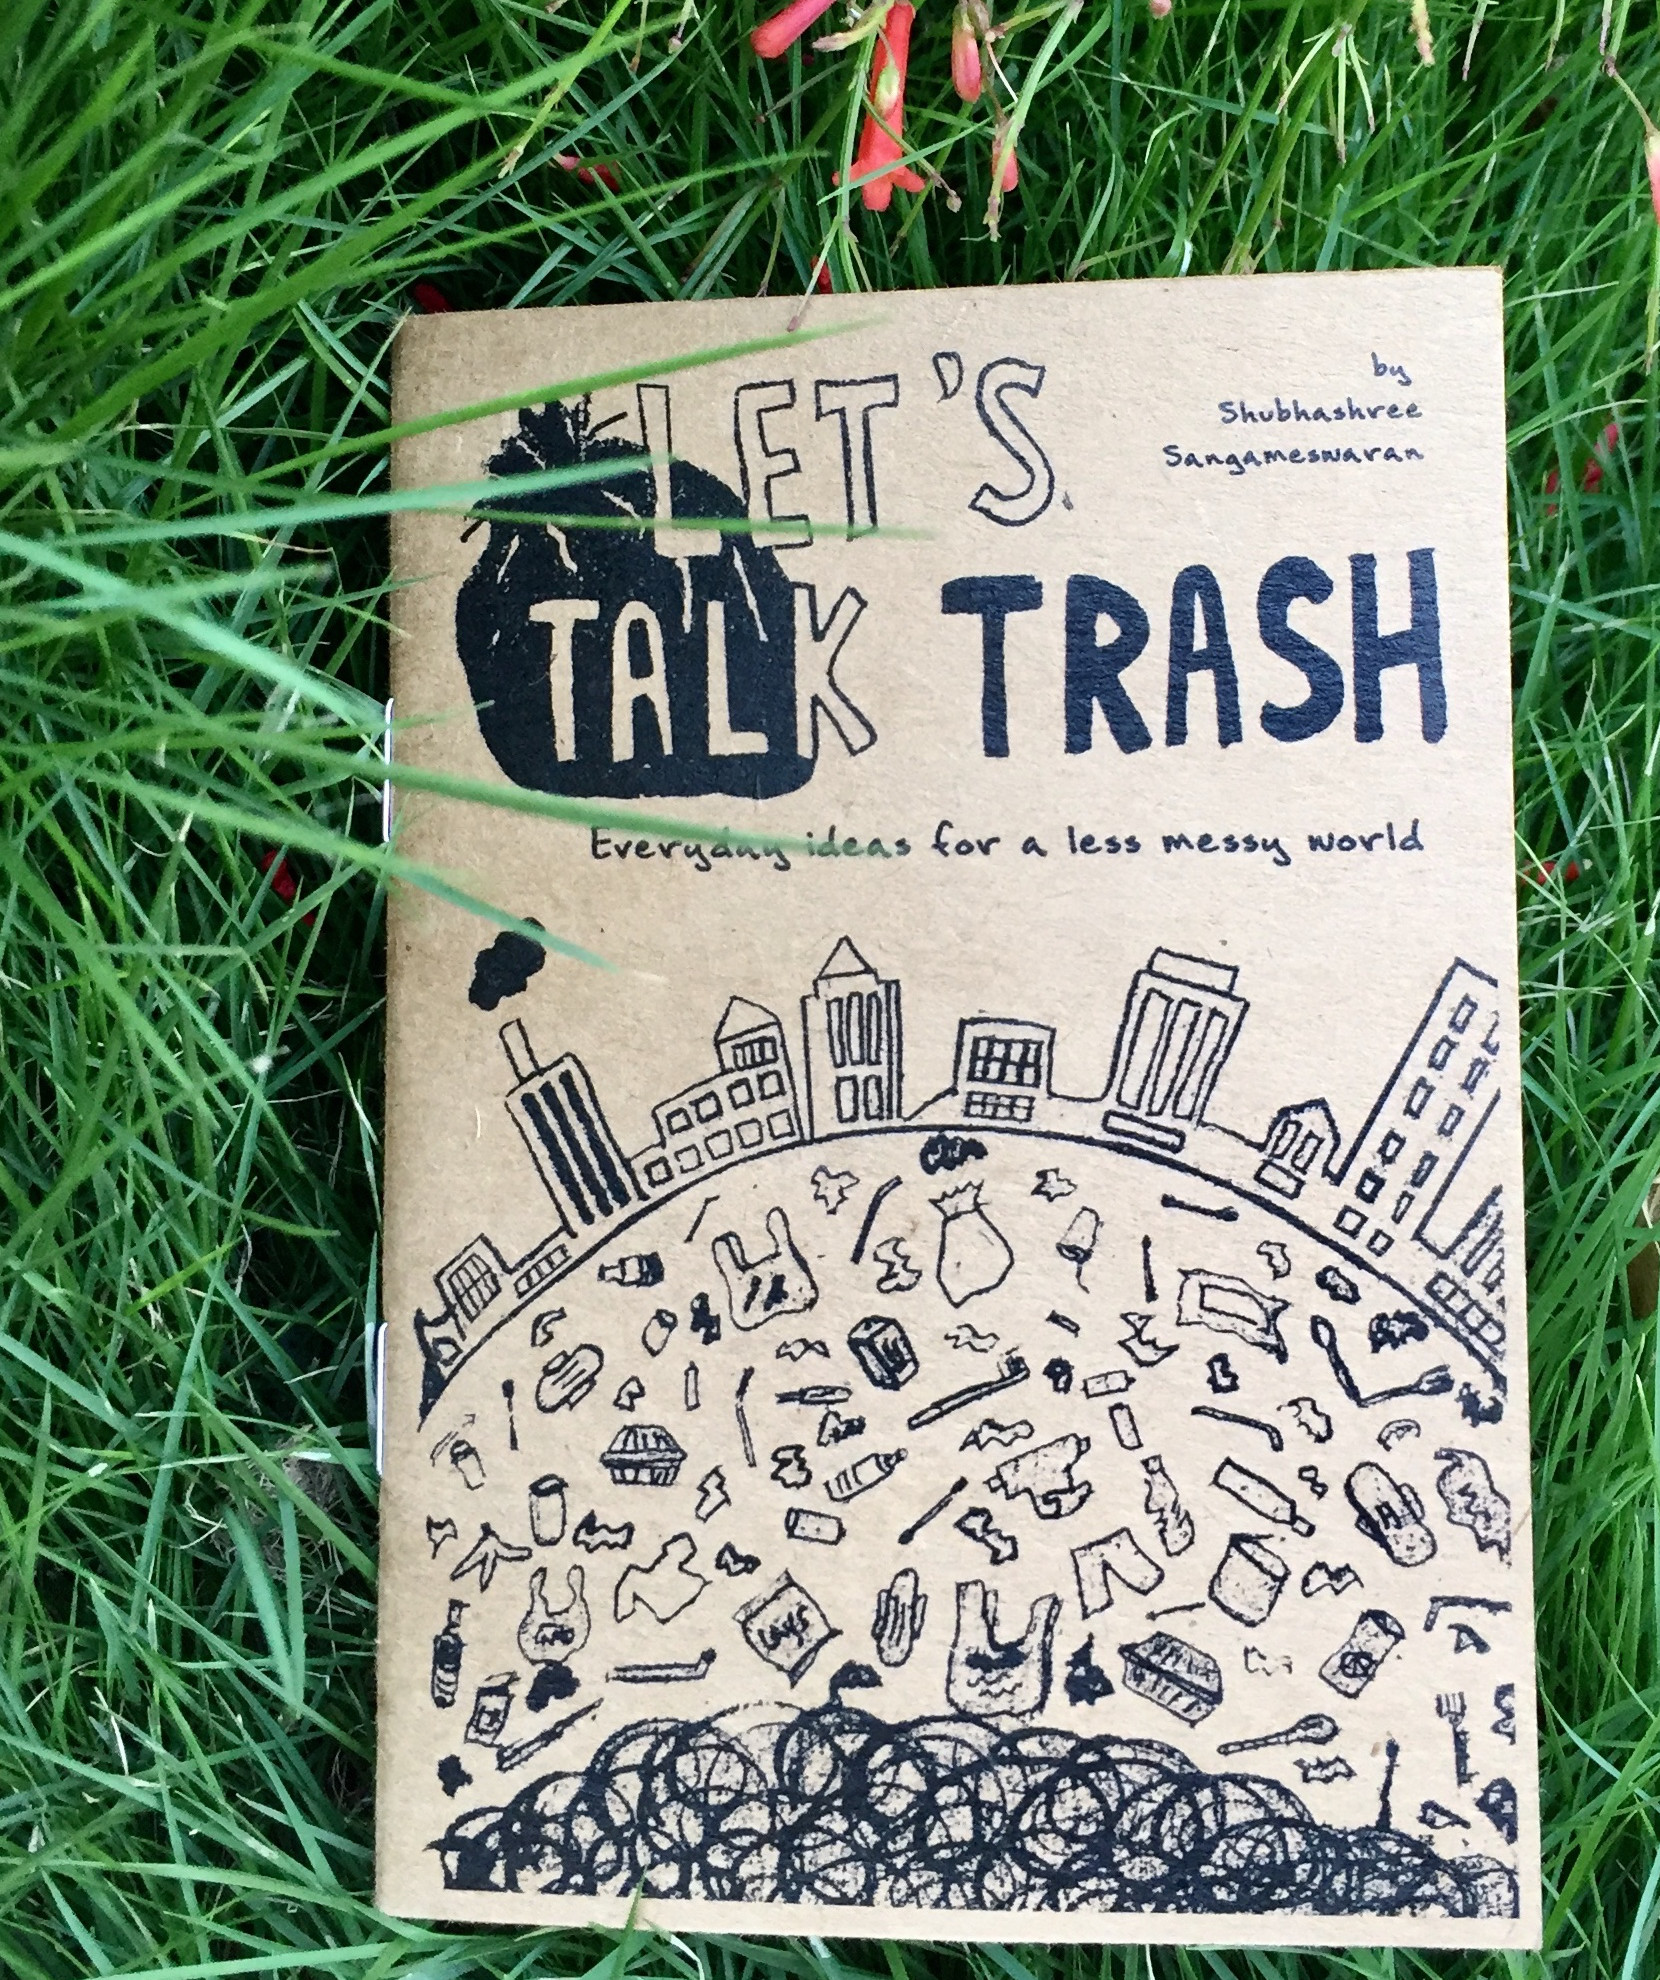 LET'S TALK TRASH - A little illustrated handbook by Shubhashree Sangameswaran with simple, everyday ideas towards a less messy world.Also, a brief look at the past to see what lessons we can learn from our earlier generations and how they were pretty effortlessly #zerowaste, even before it became a hashtag.If you're getting a bit disgruntled at the state of our planet and wondering where to start, this book is for you. If you're already 'woke' and you carry your own cutlery and #RefuseTheStraw, but some people STILL don't seem to get it - this book is a perfect gift for them!Please write to me if you'd like to order bulk copies at a discount for schools. I'd also love to send printable PDFs if required. Also, if you'd like to order multiple copies, drop me an email on thehungrypalette@gmail.com so we can work out a lower shipping rate.A6 size, 36 pages. Price: Rs 140 plus shipping and handling.